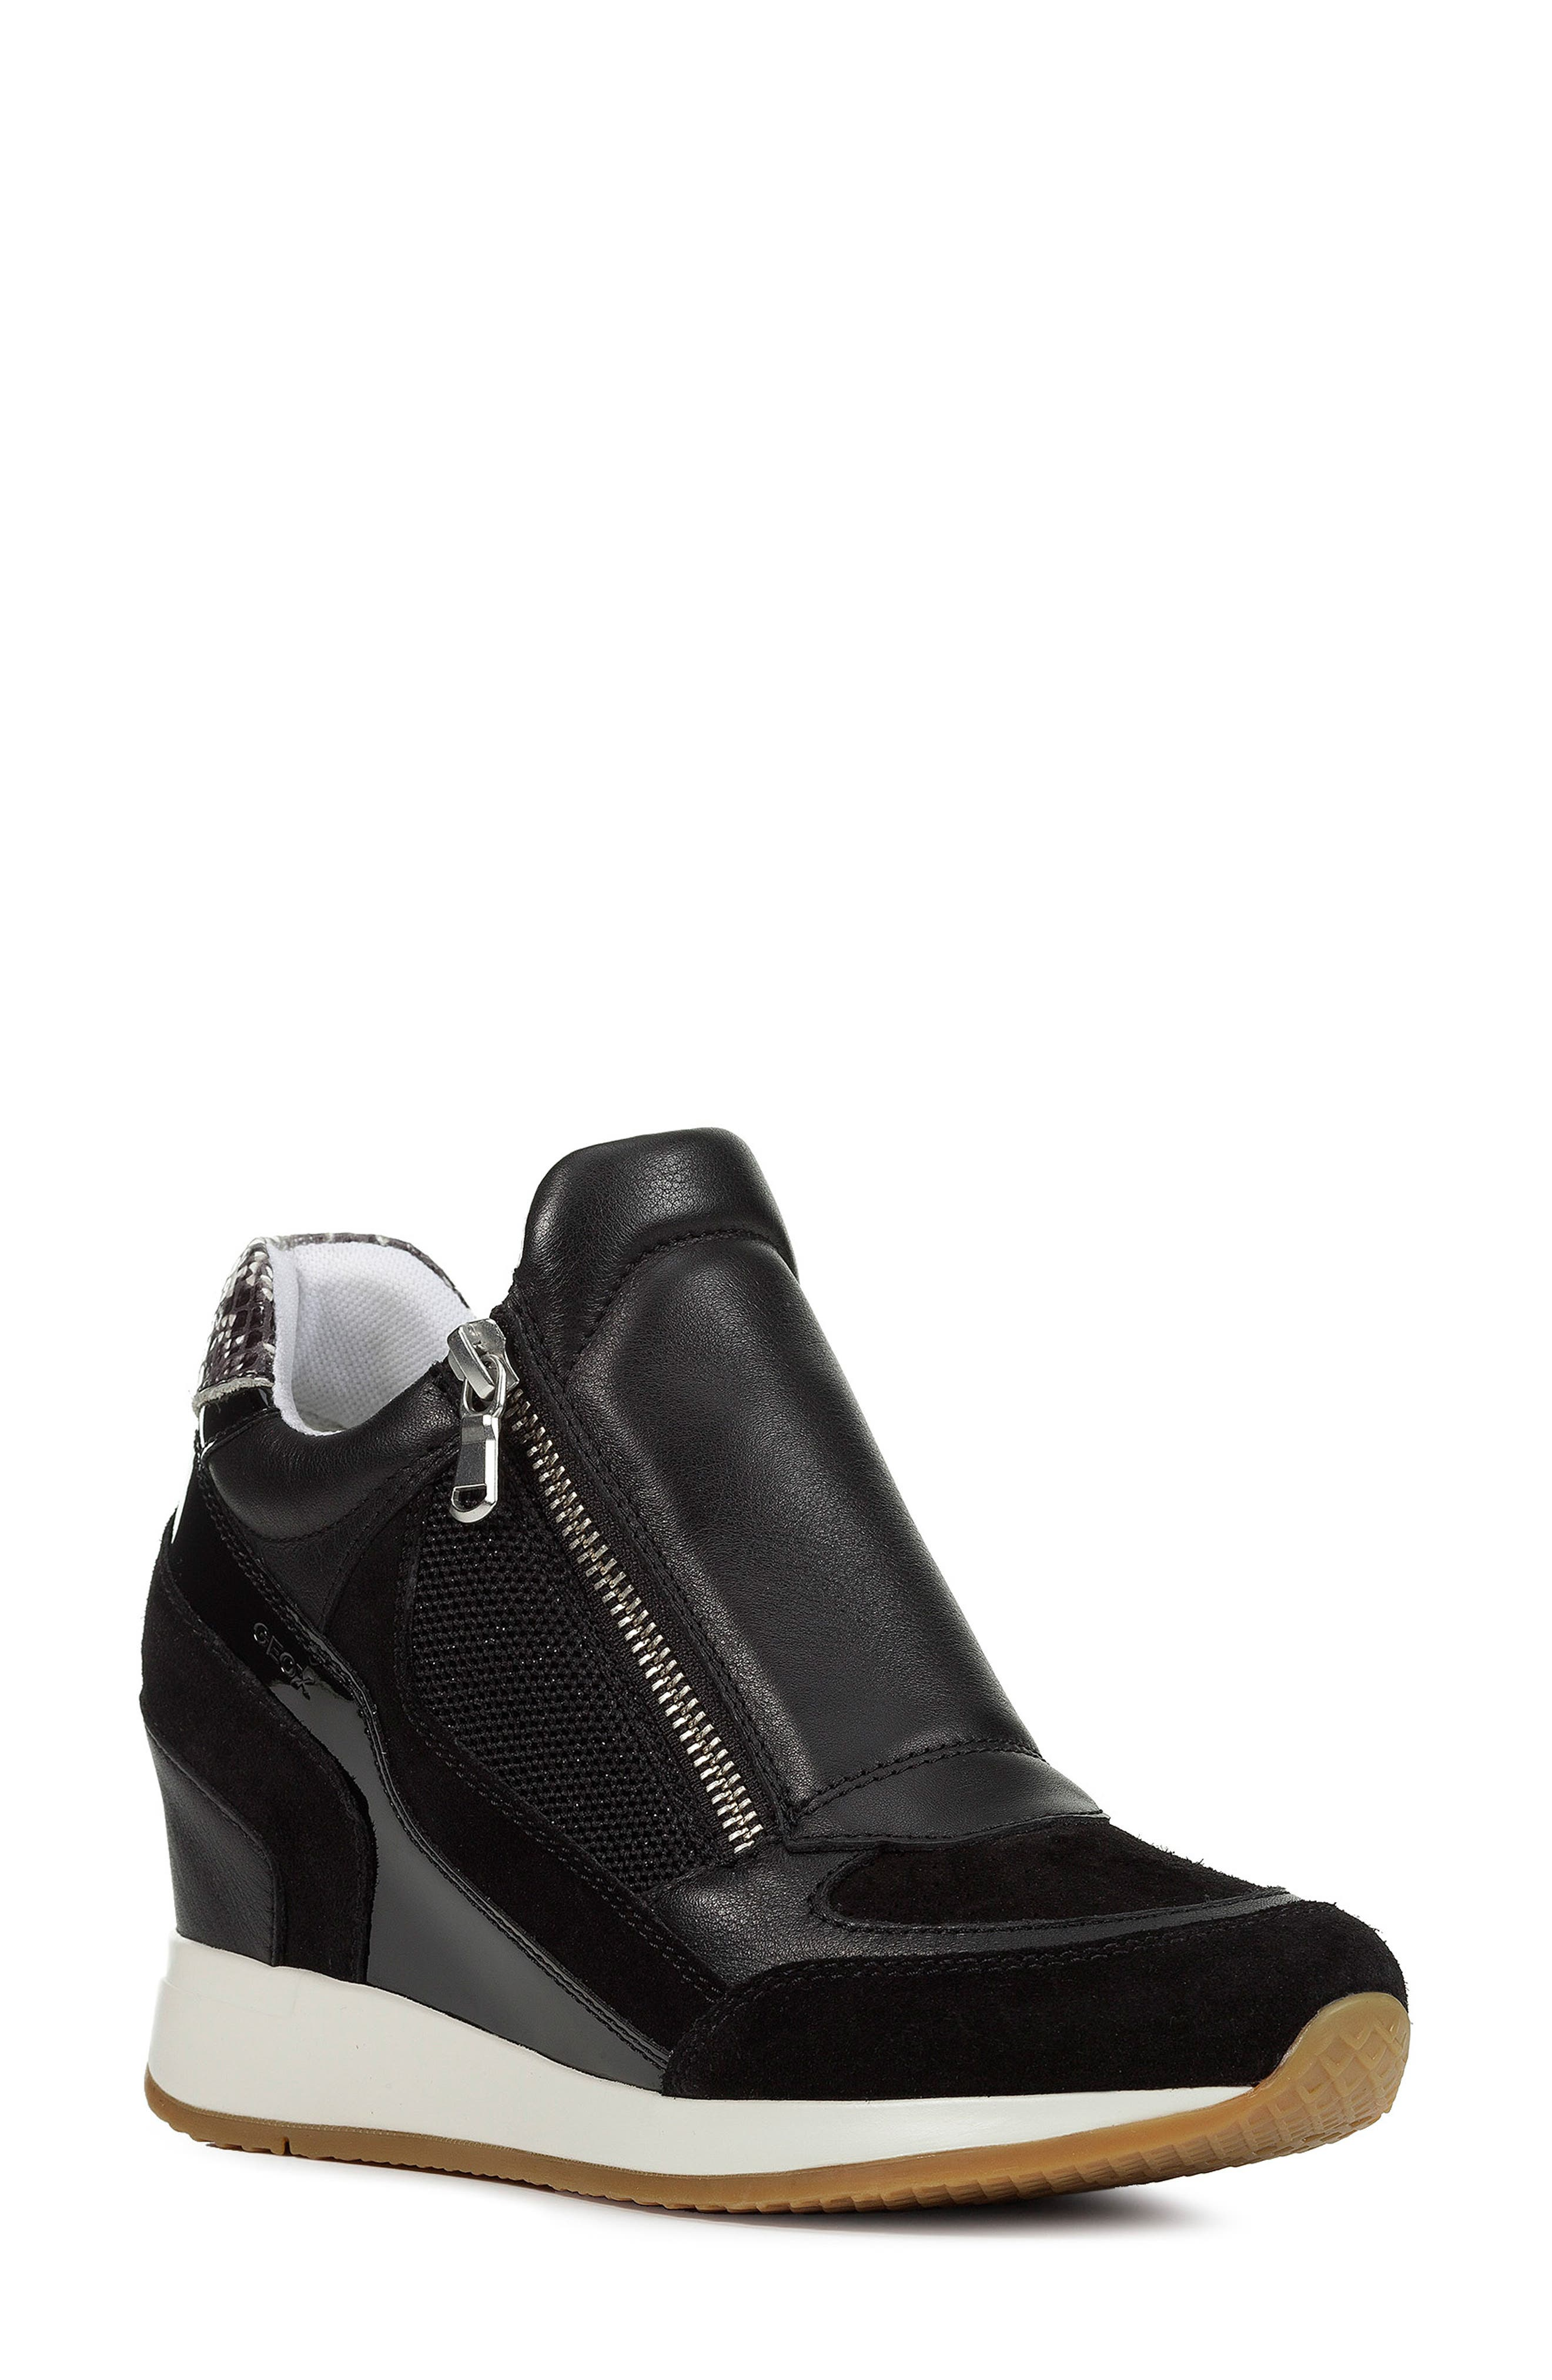 Nydame Wedge Sneaker,                             Main thumbnail 1, color,                             BLACK/ BLACK LEATHER